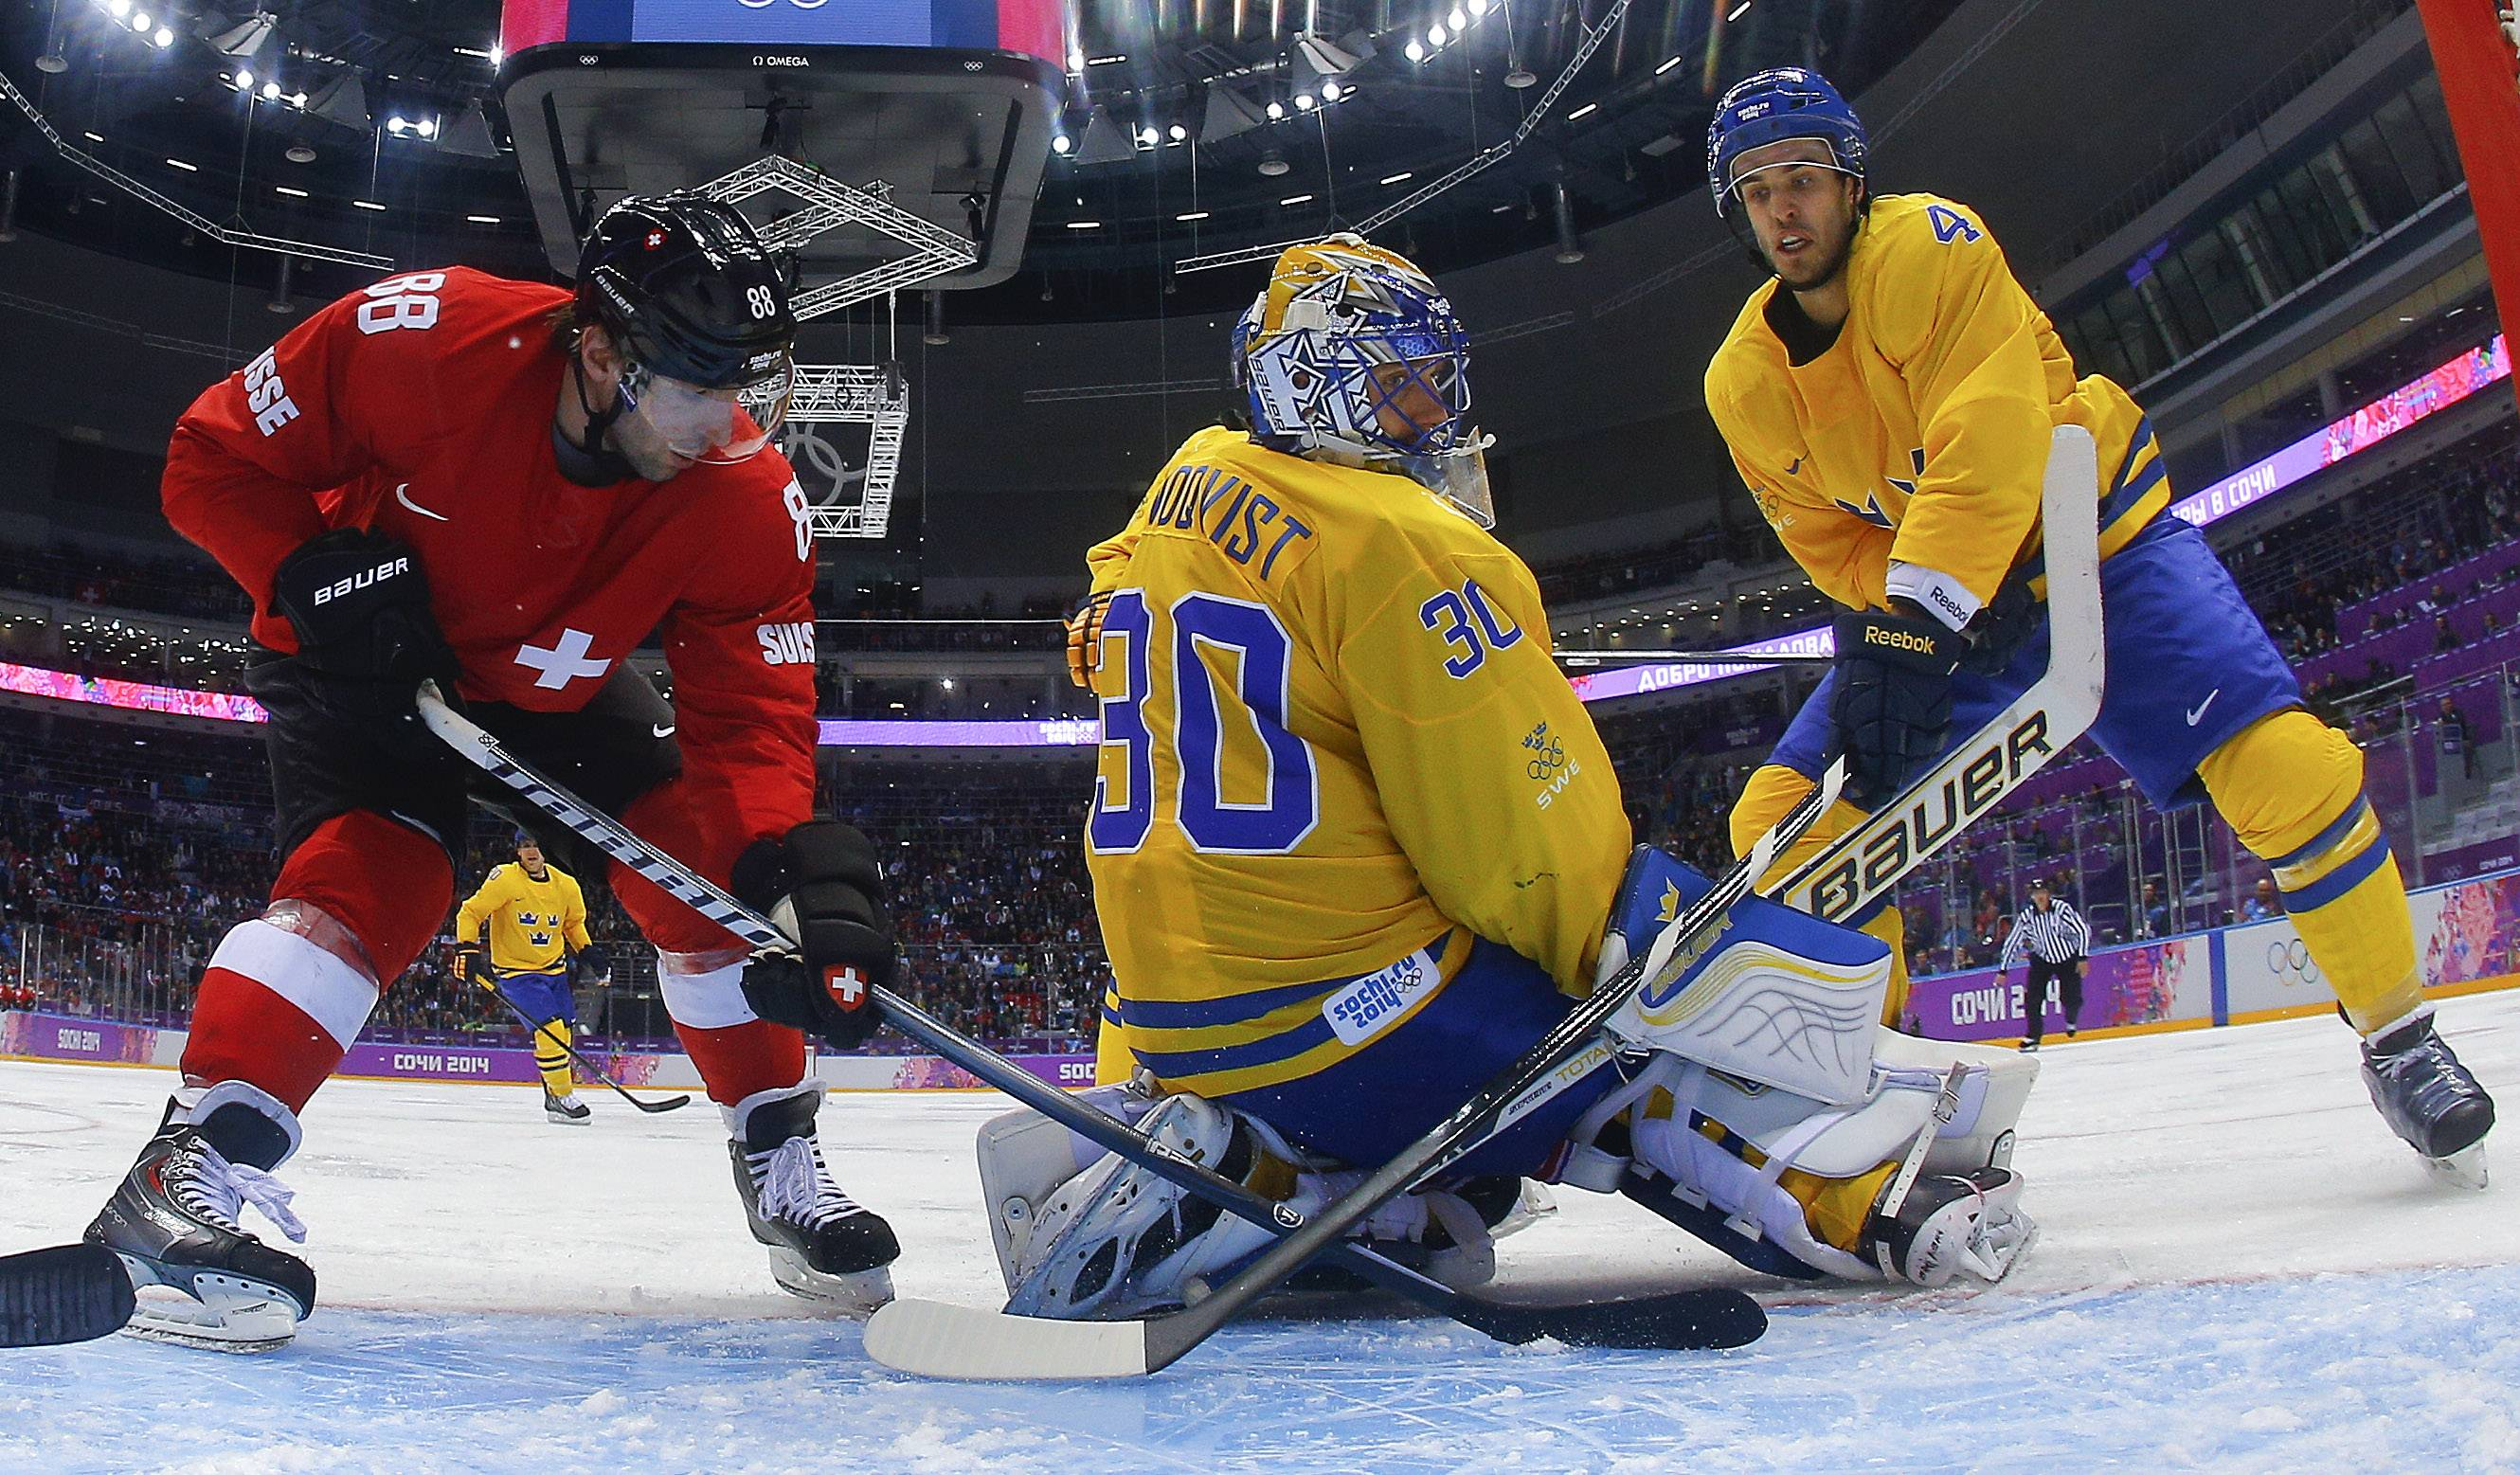 Switzerland forward Kevin Romy (88) and Sweden defenseman Niklas Hjalmarsson look for the rebound behind goaltender Henrik Lundqvist in the third period of a men's ice hockey game at the 2014 Winter Olympics, Friday, Feb. 14, 2014 in Sochi, Russia. Sweden won 1-0.